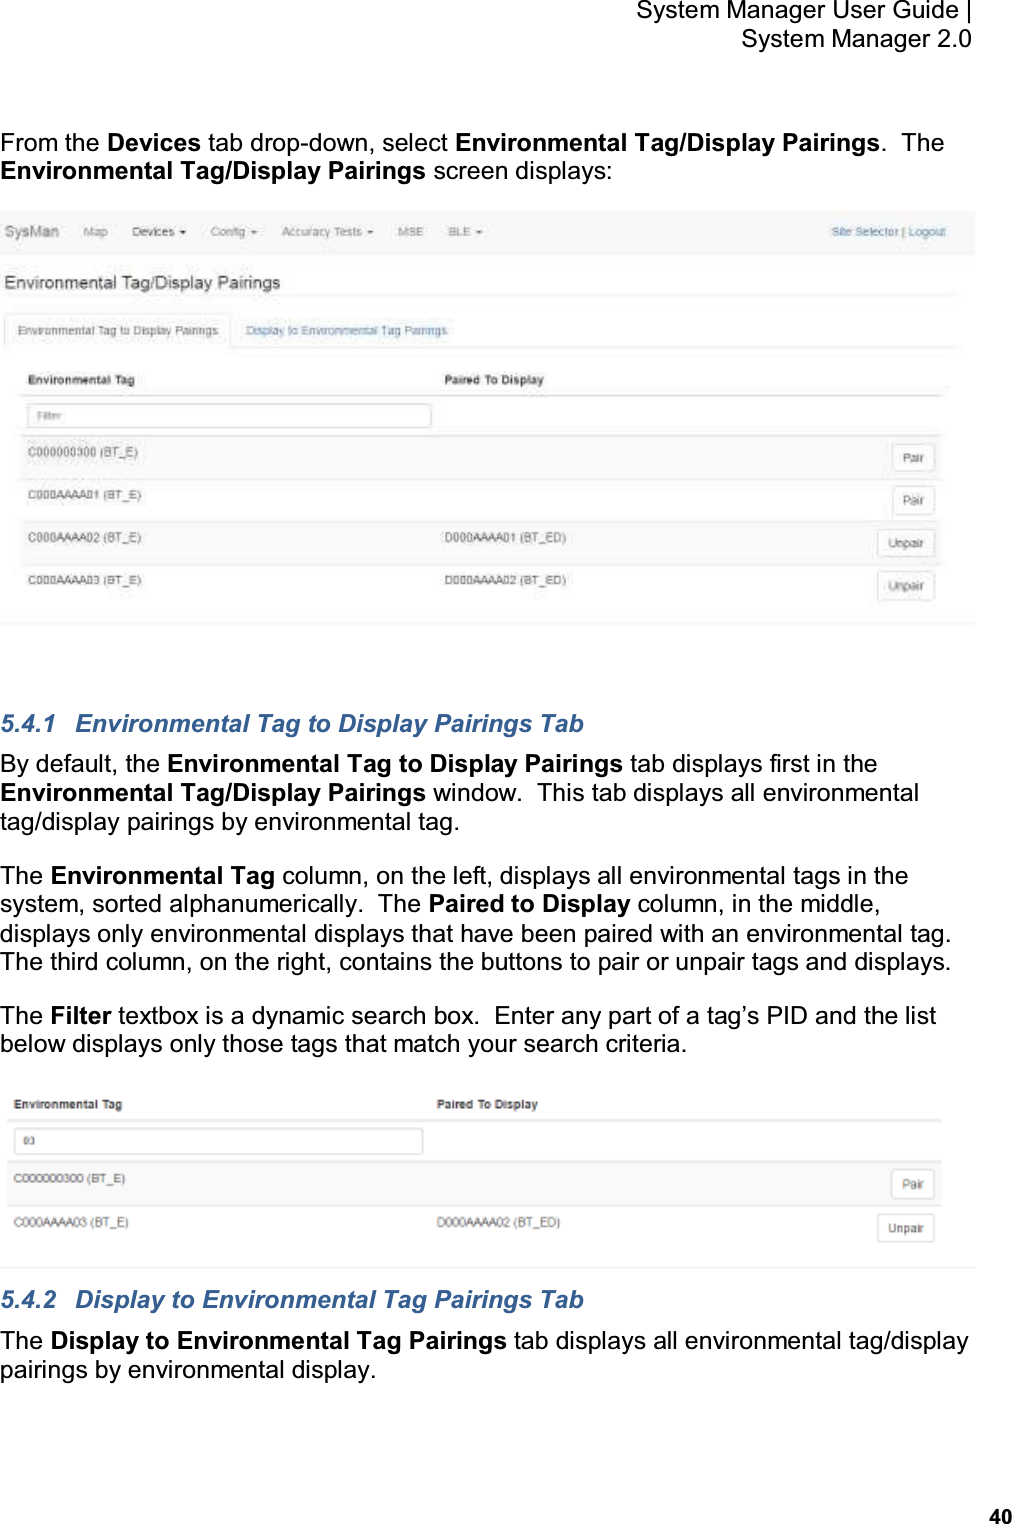 40 System Manager User Guide    System Manager 2.0 From the Devices tab drop-down, select Environmental Tag/Display Pairings.  The Environmental Tag/Display Pairings screen displays:   5.4.1  Environmental Tag to Display Pairings Tab By default, the Environmental Tag to Display Pairings tab displays first in the Environmental Tag/Display Pairings window.  This tab displays all environmental tag/display pairings by environmental tag. The Environmental Tag column, on the left, displays all environmental tags in the system, sorted alphanumerically.  The Paired to Display column, in the middle, displays only environmental displays that have been paired with an environmental tag.  The third column, on the right, contains the buttons to pair or unpair tags and displays. The Filter textbox is a dynamic search box.  Enter any part of a tag's PID and the list below displays only those tags that match your search criteria.  5.4.2  Display to Environmental Tag Pairings Tab The Display to Environmental Tag Pairings tab displays all environmental tag/display pairings by environmental display.